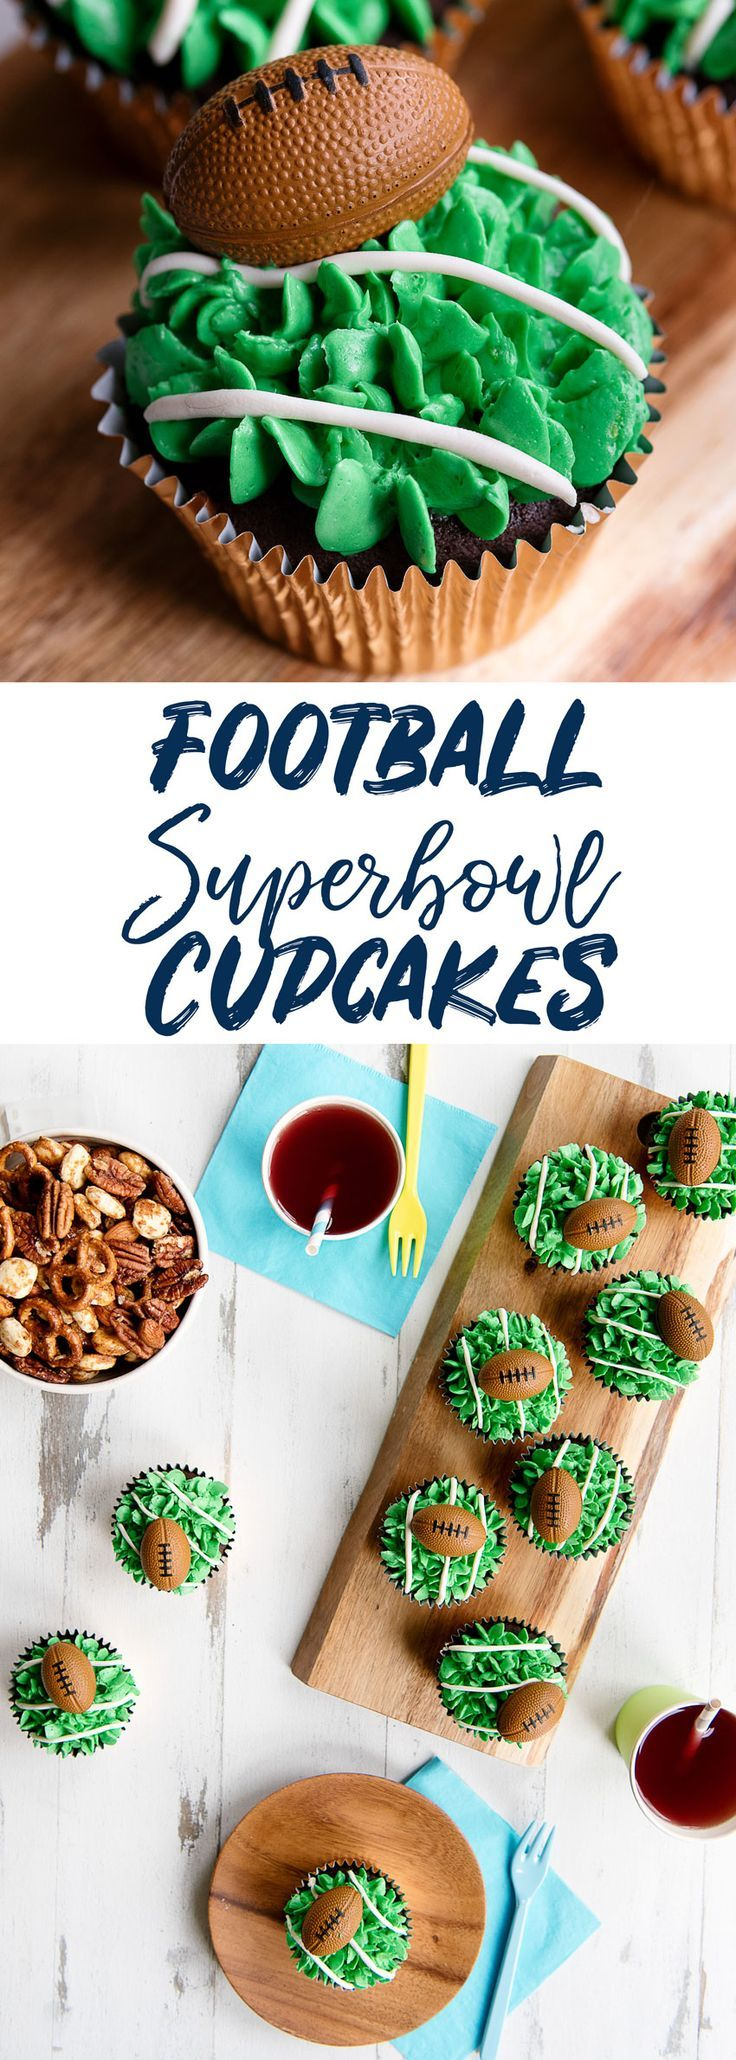 Easy Superbowl Football Cupcakes with Piped Grass Frosting #football #tailgate #superbowl #cupcakes #partyfood